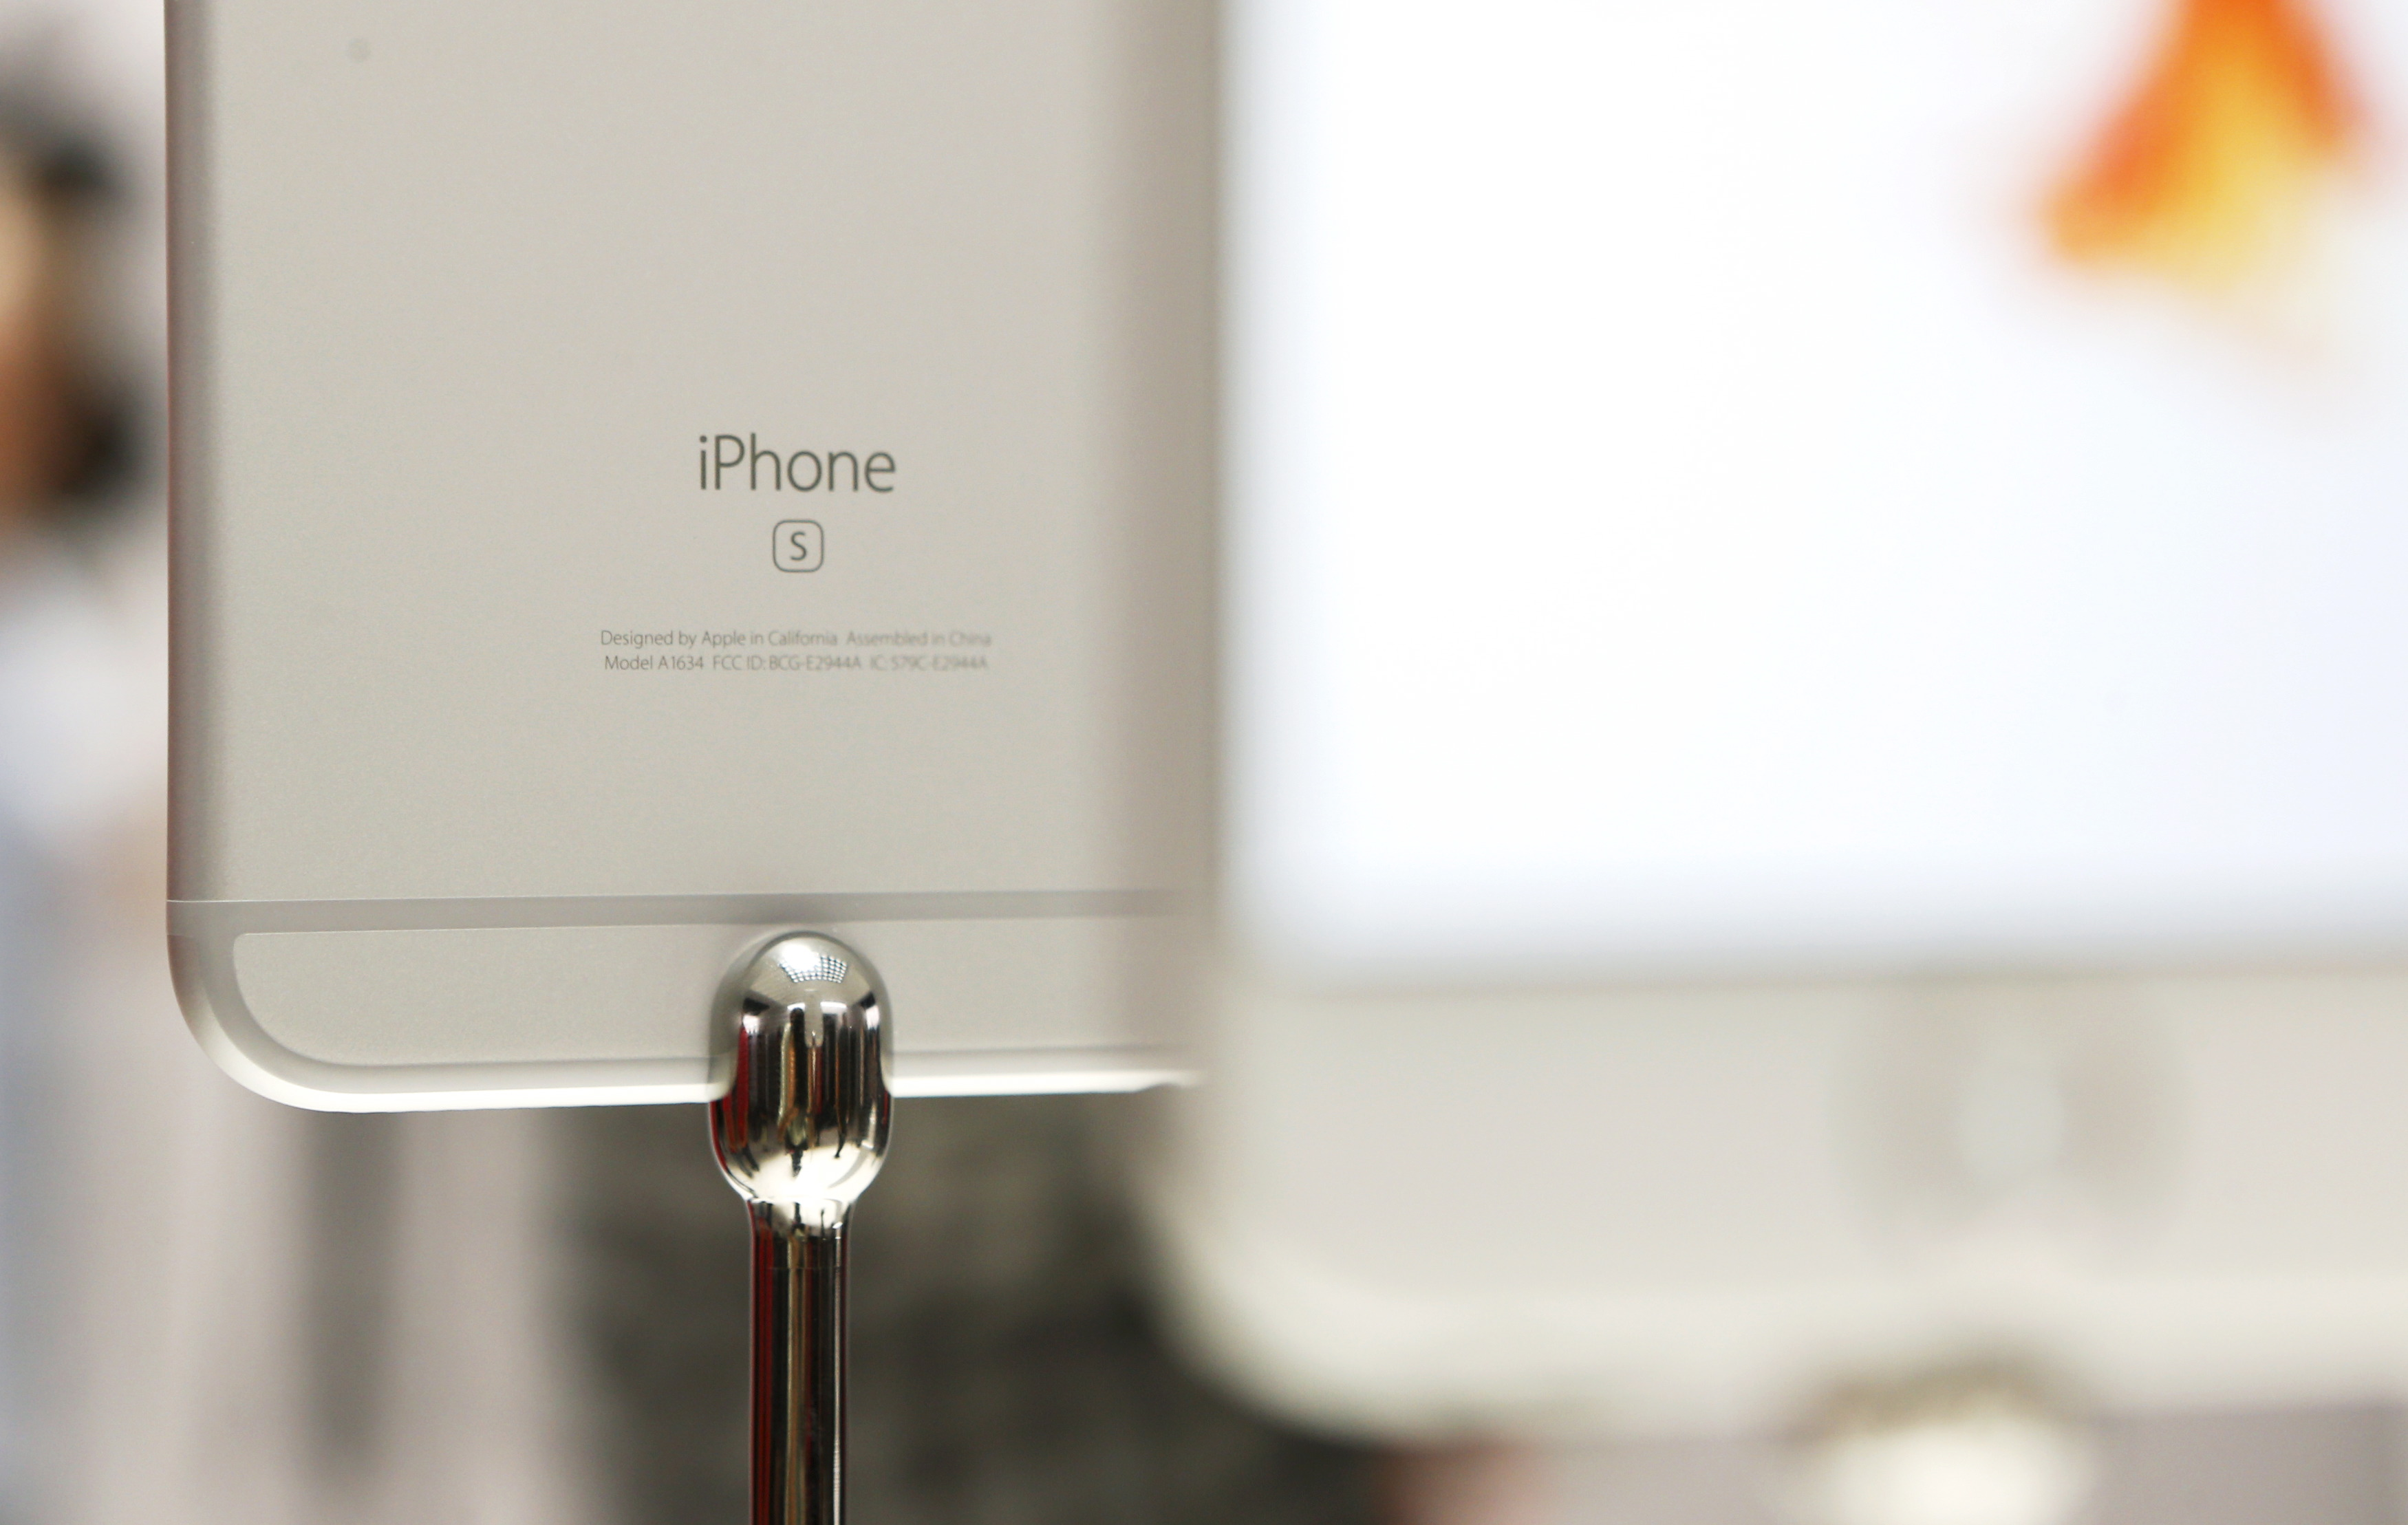 About Apple's iPod!?